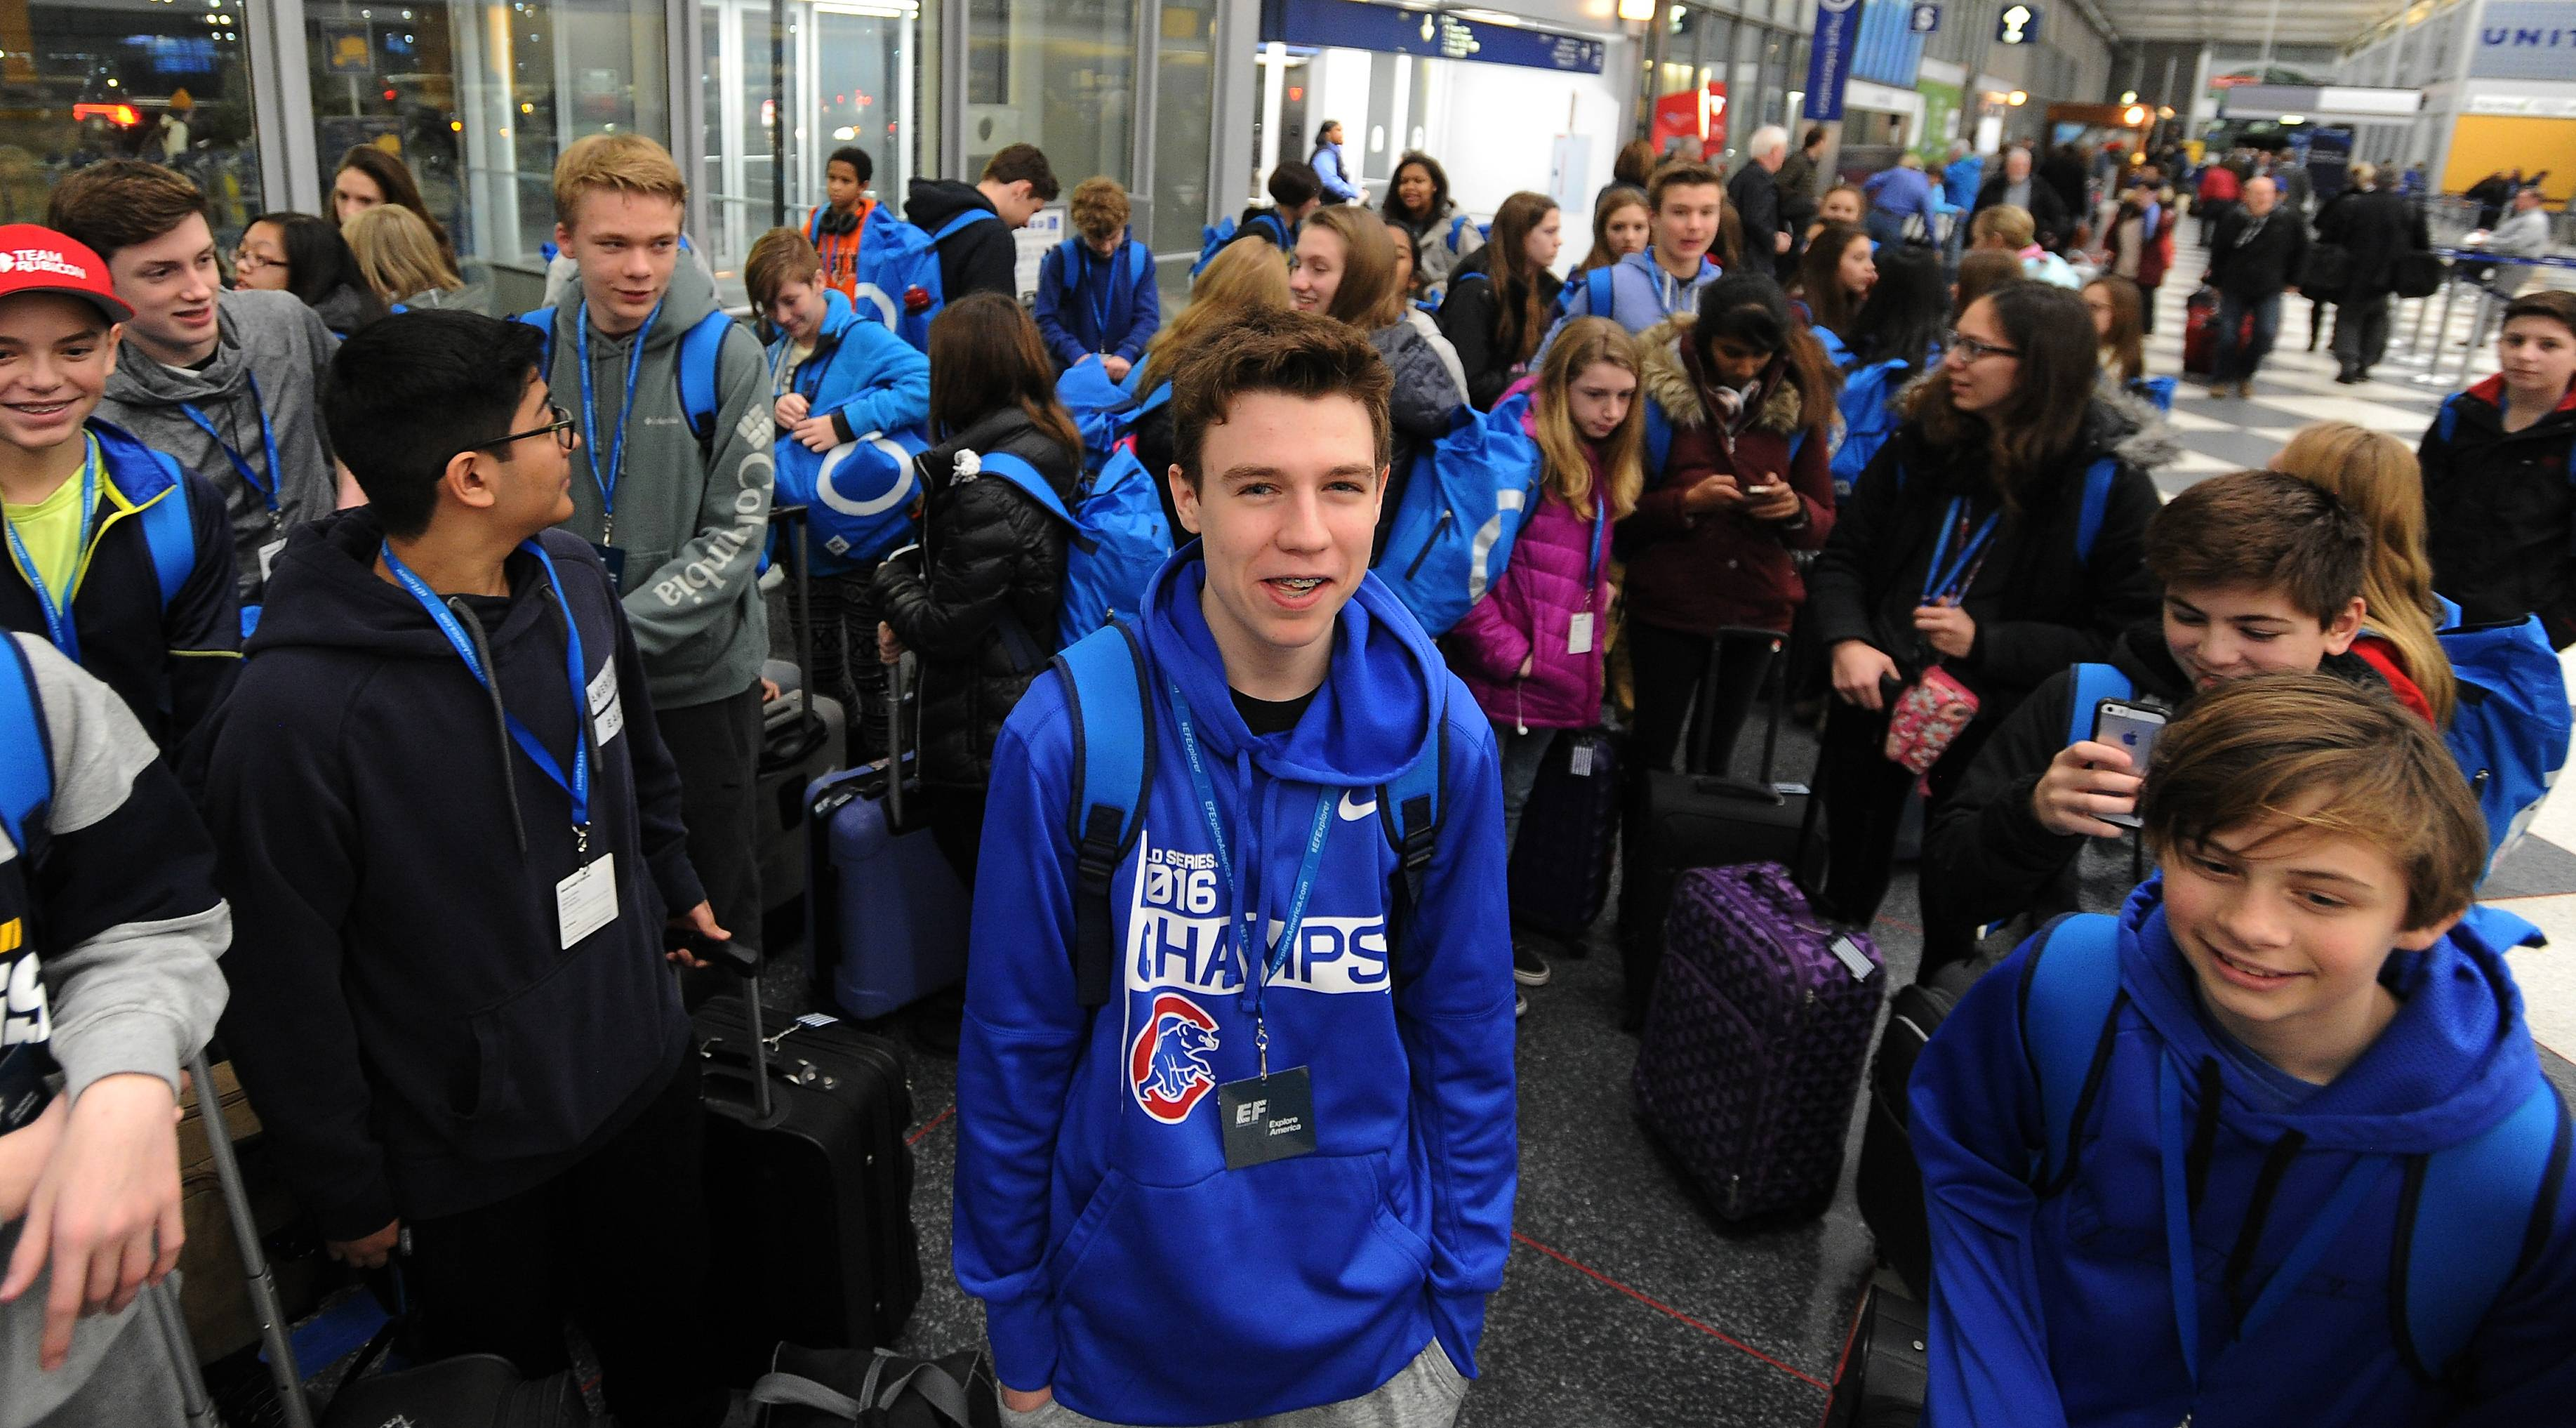 Gavin Boos, 14, of Bernotas Middle School, is among about 160 students from Crystal Lake ready to board a plane Wednesday for the presidential inauguration Friday in Washington, D.C.